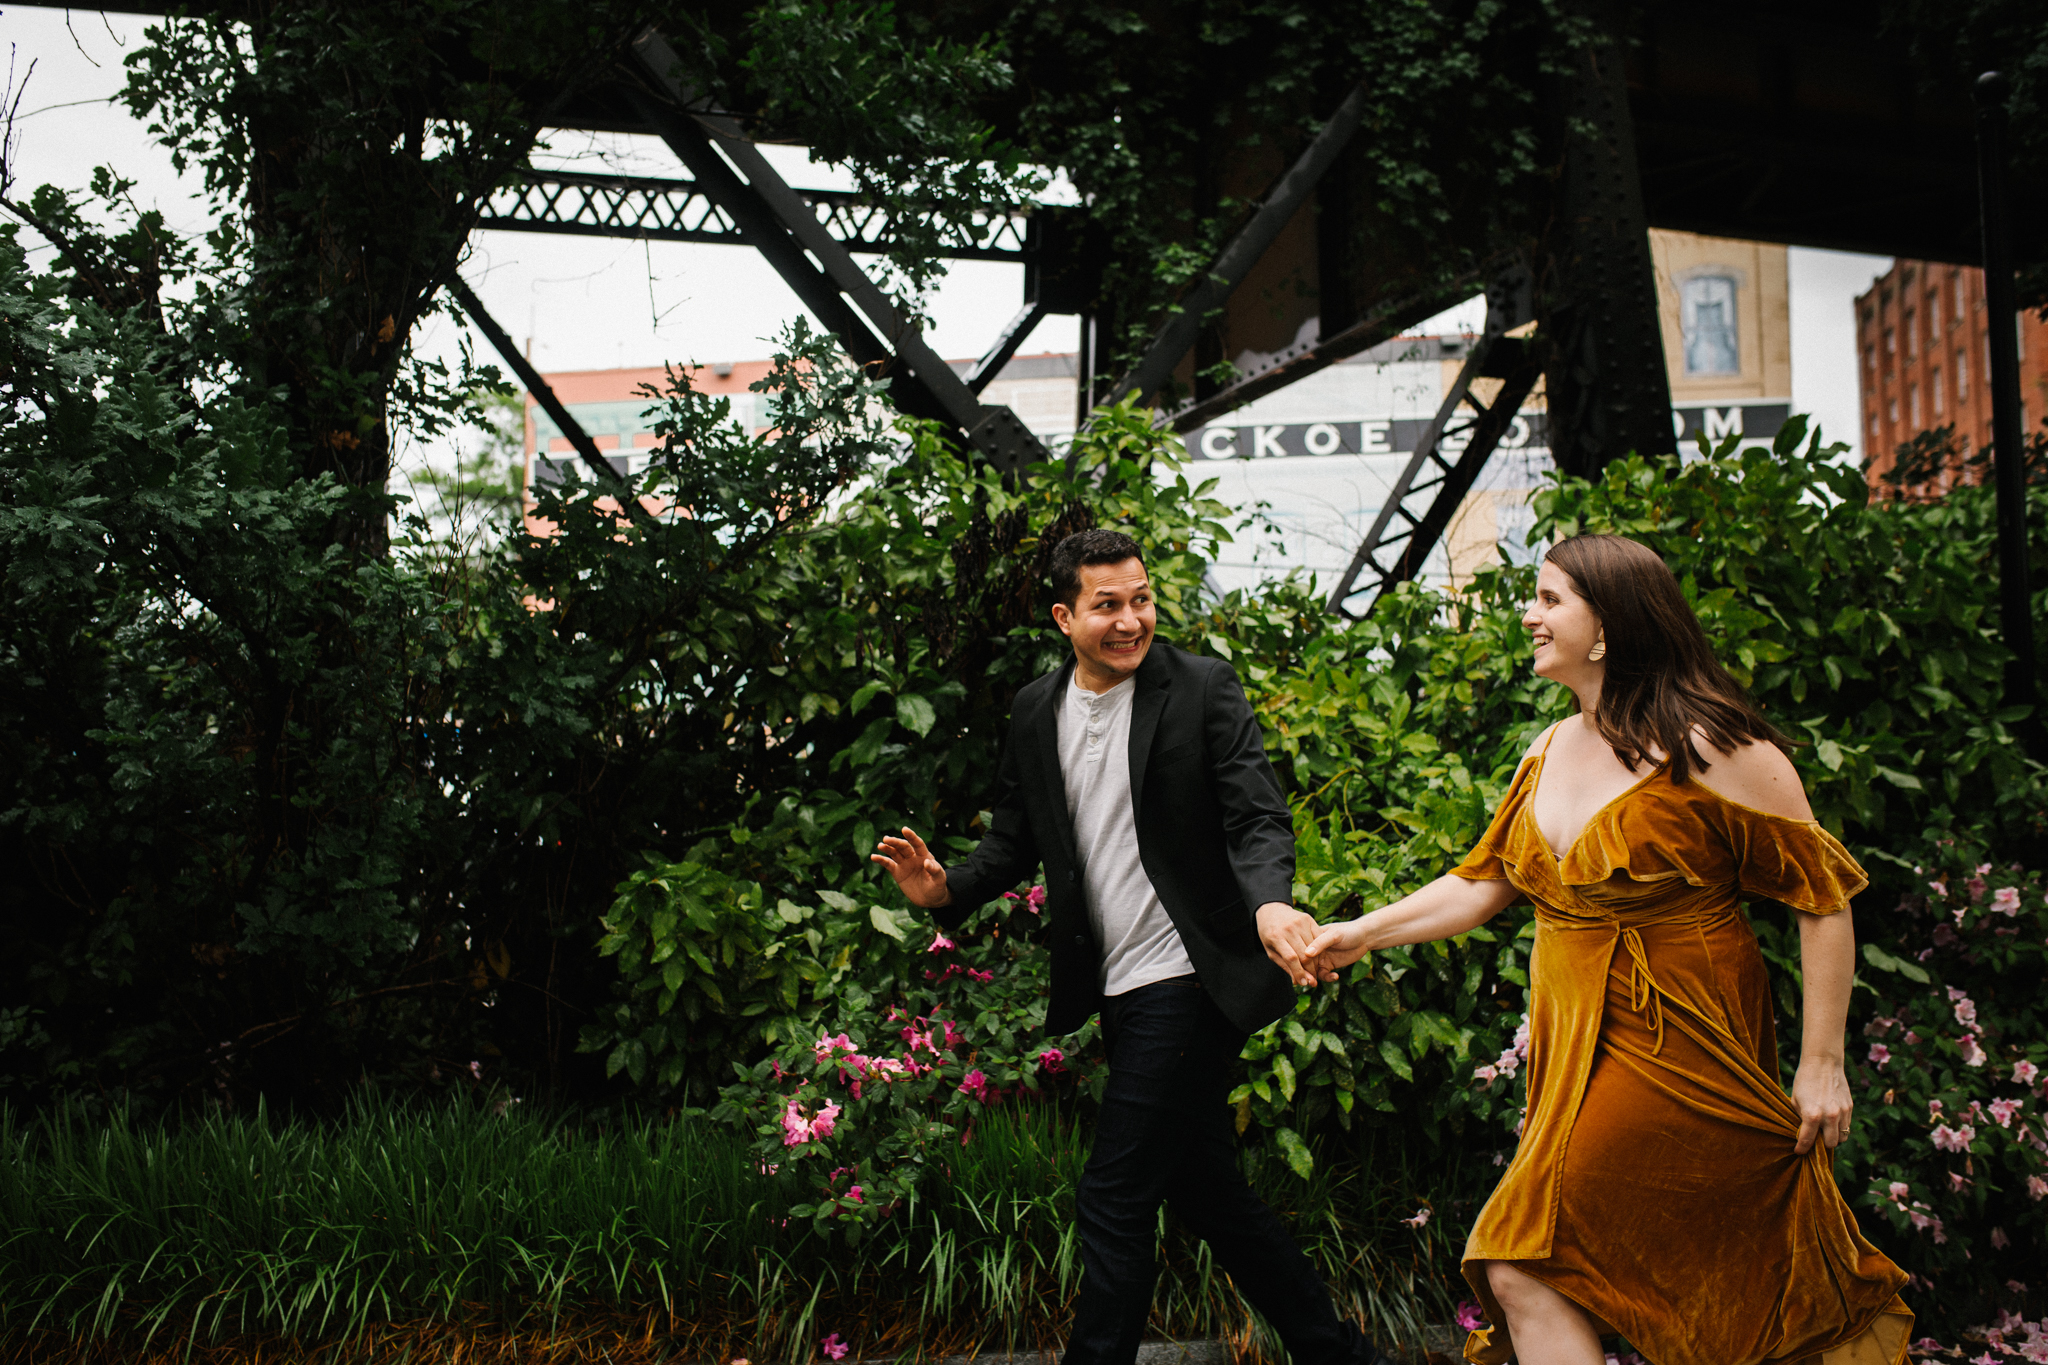 rachel_alex_richmond_engagement_session_mainstreetstation_rebeccaburtphotography-58.jpg